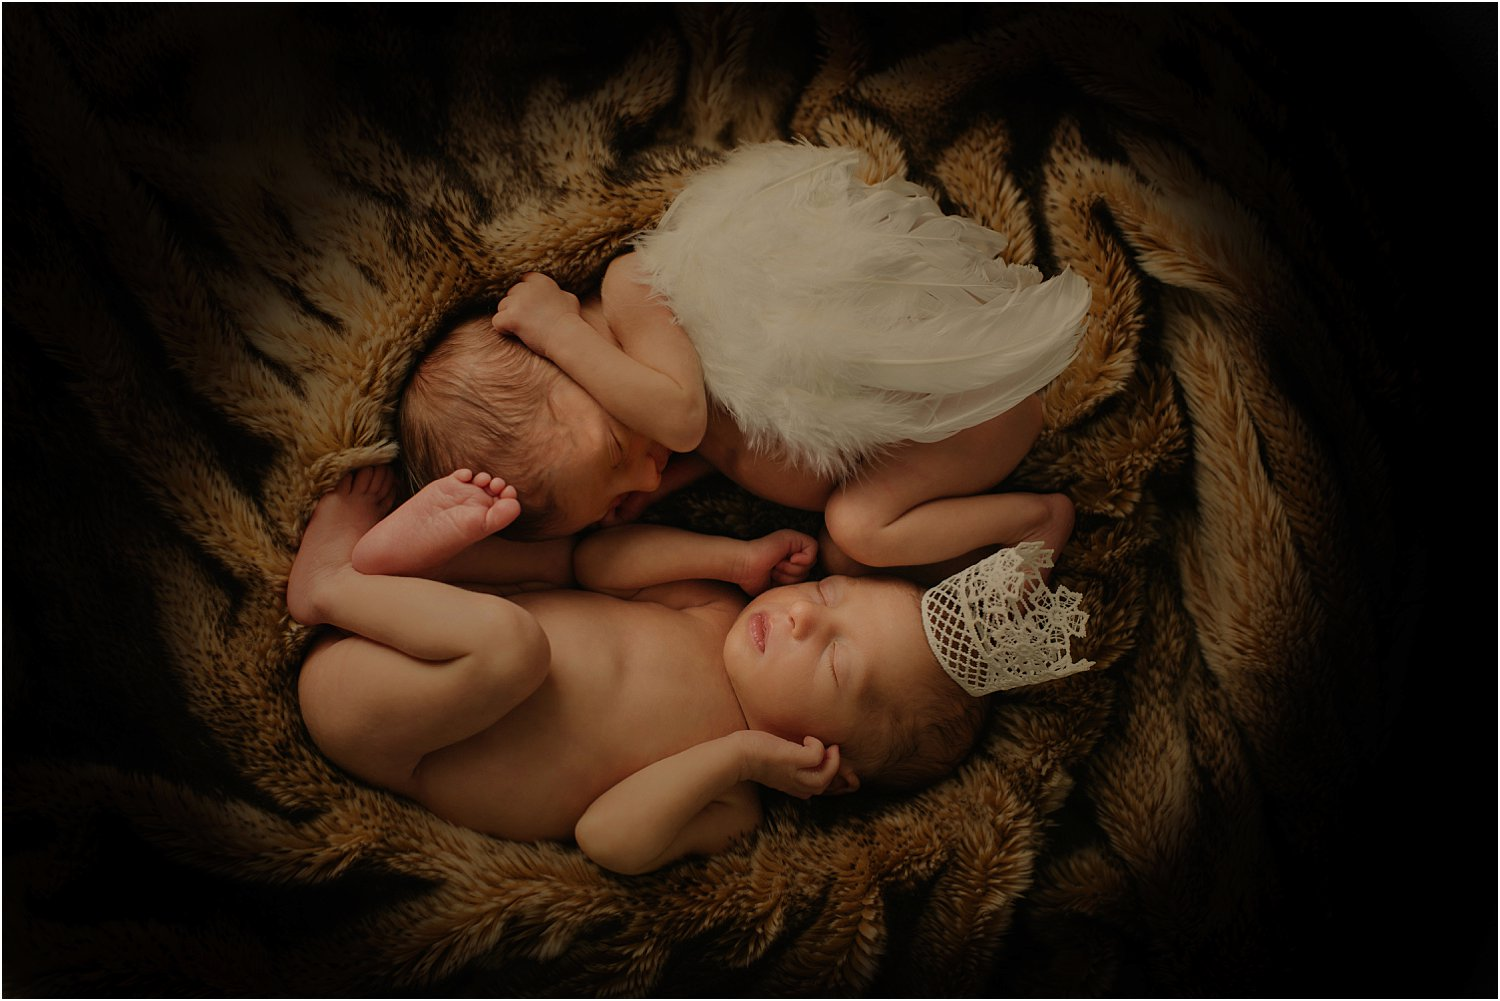 Newborn photography basics and the equipment to use